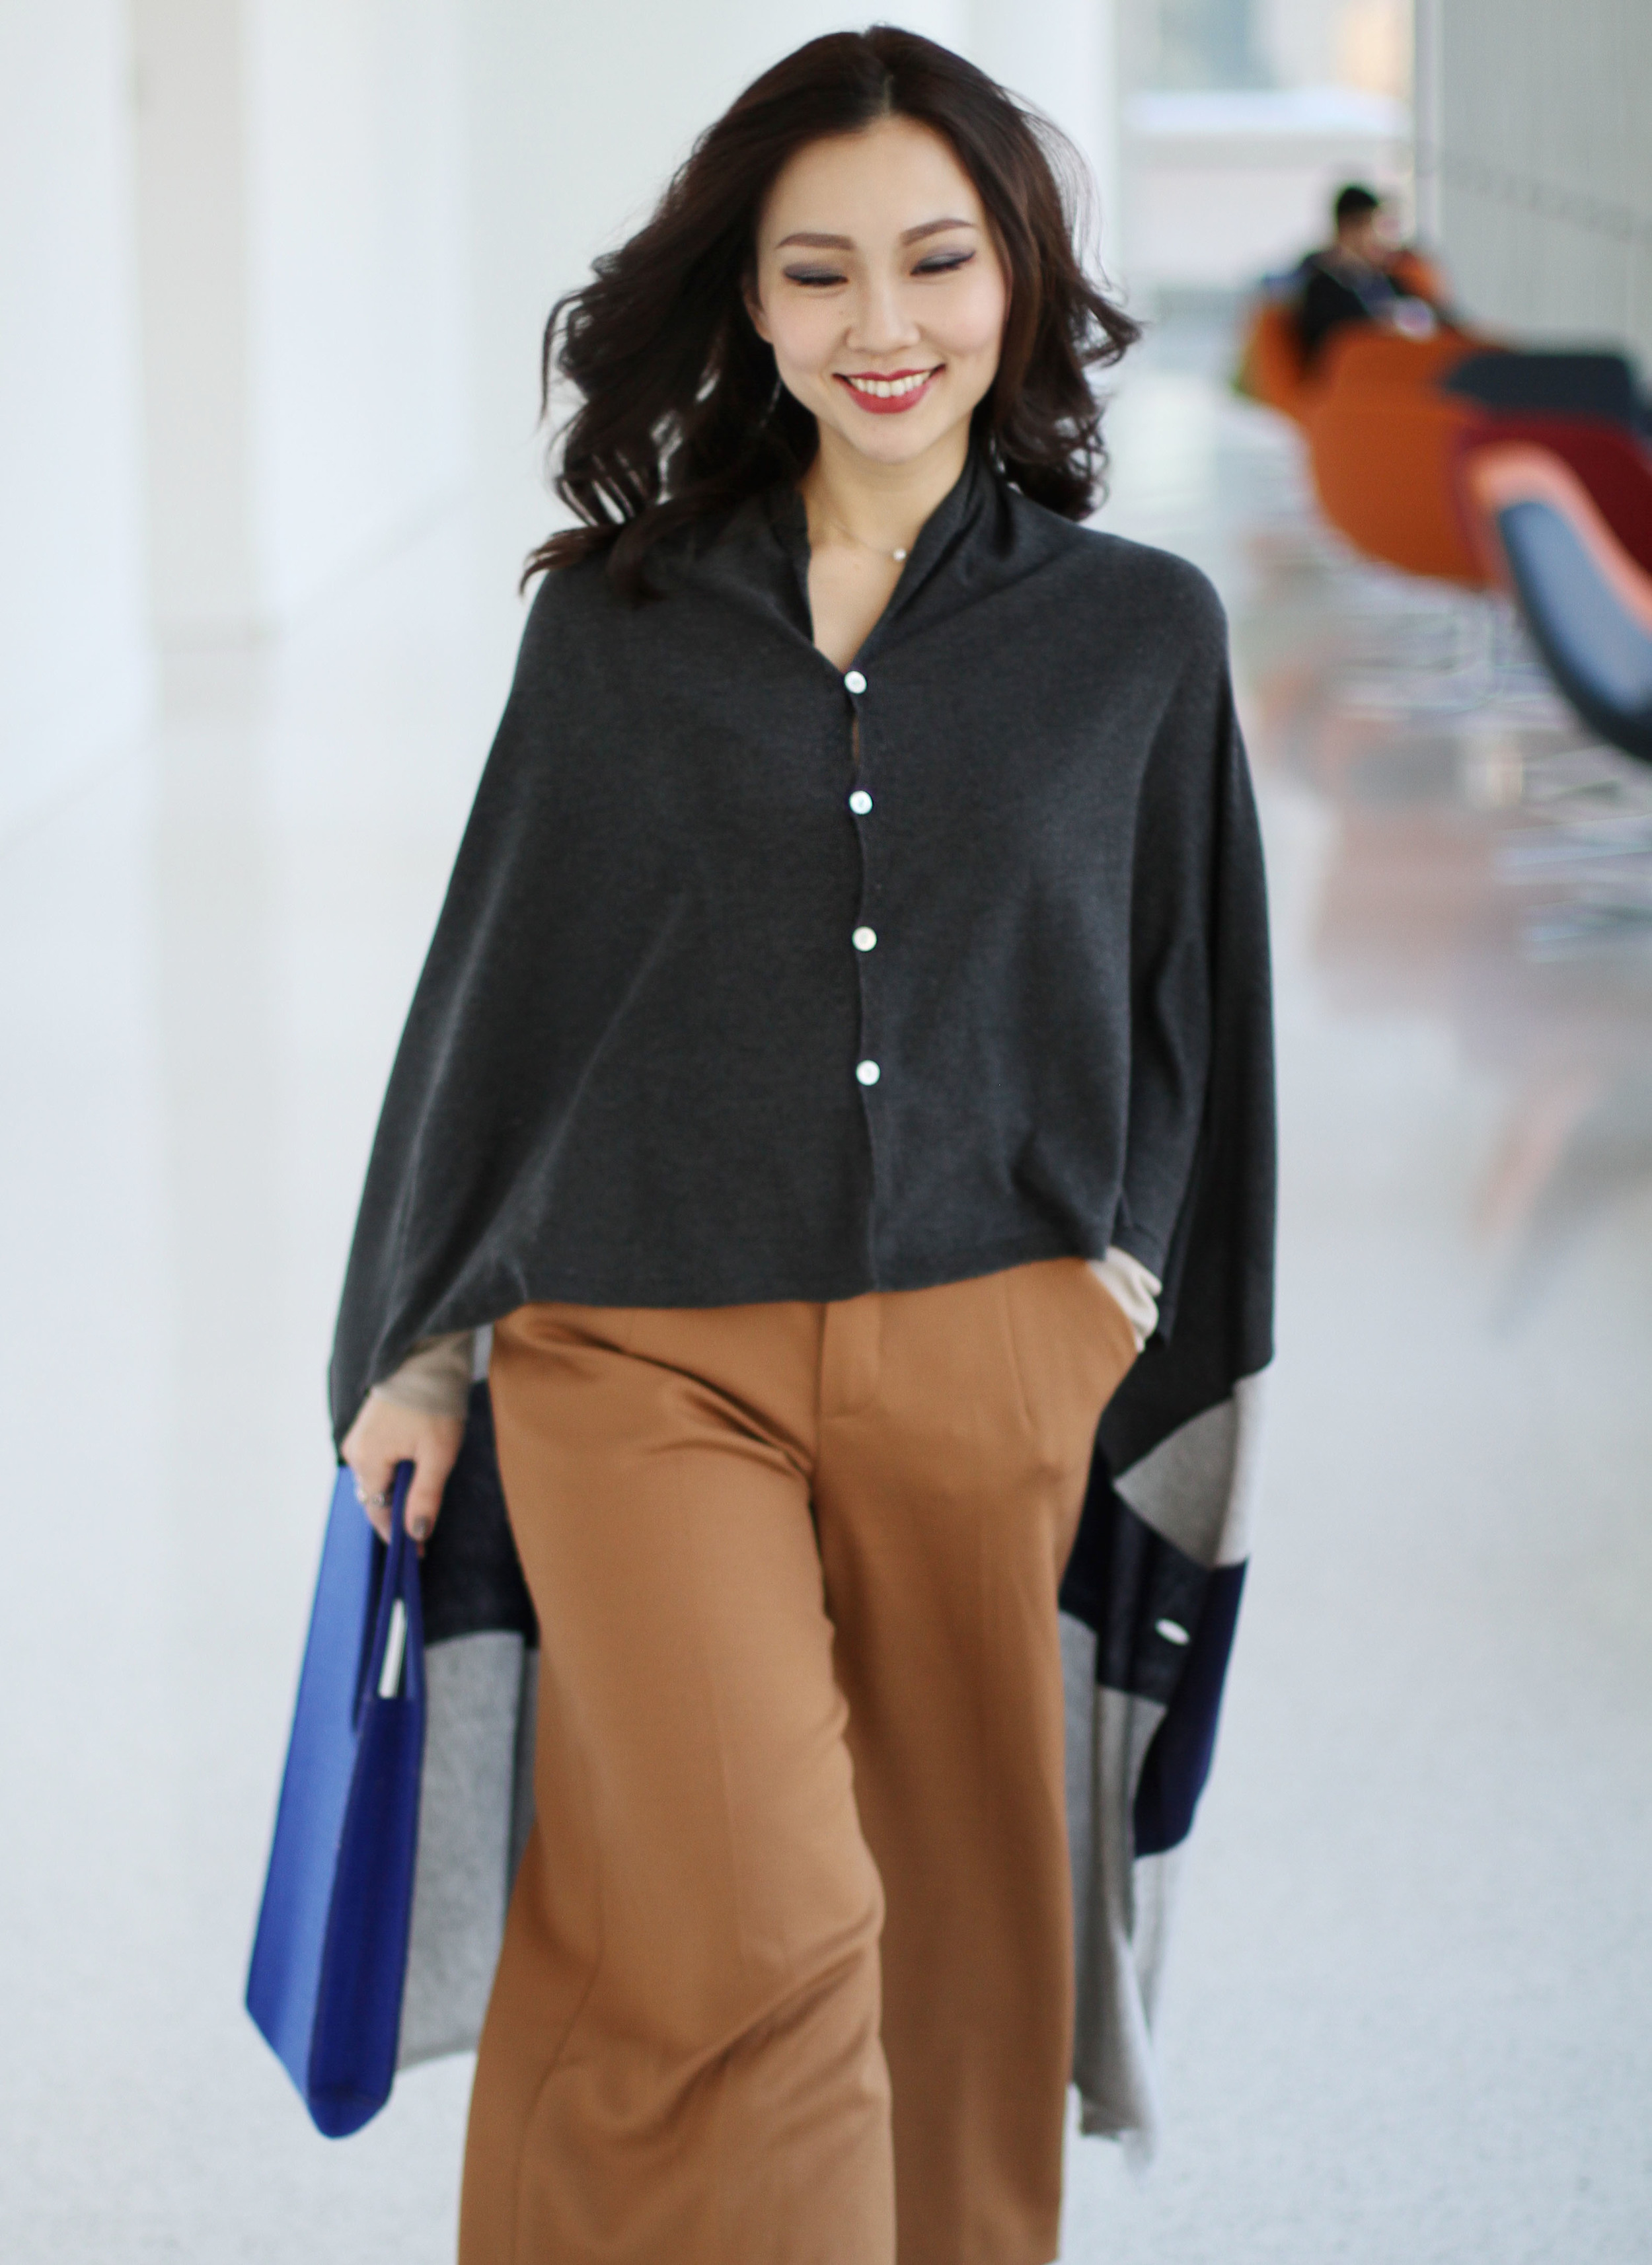 jia collection scarf top 2.jpg